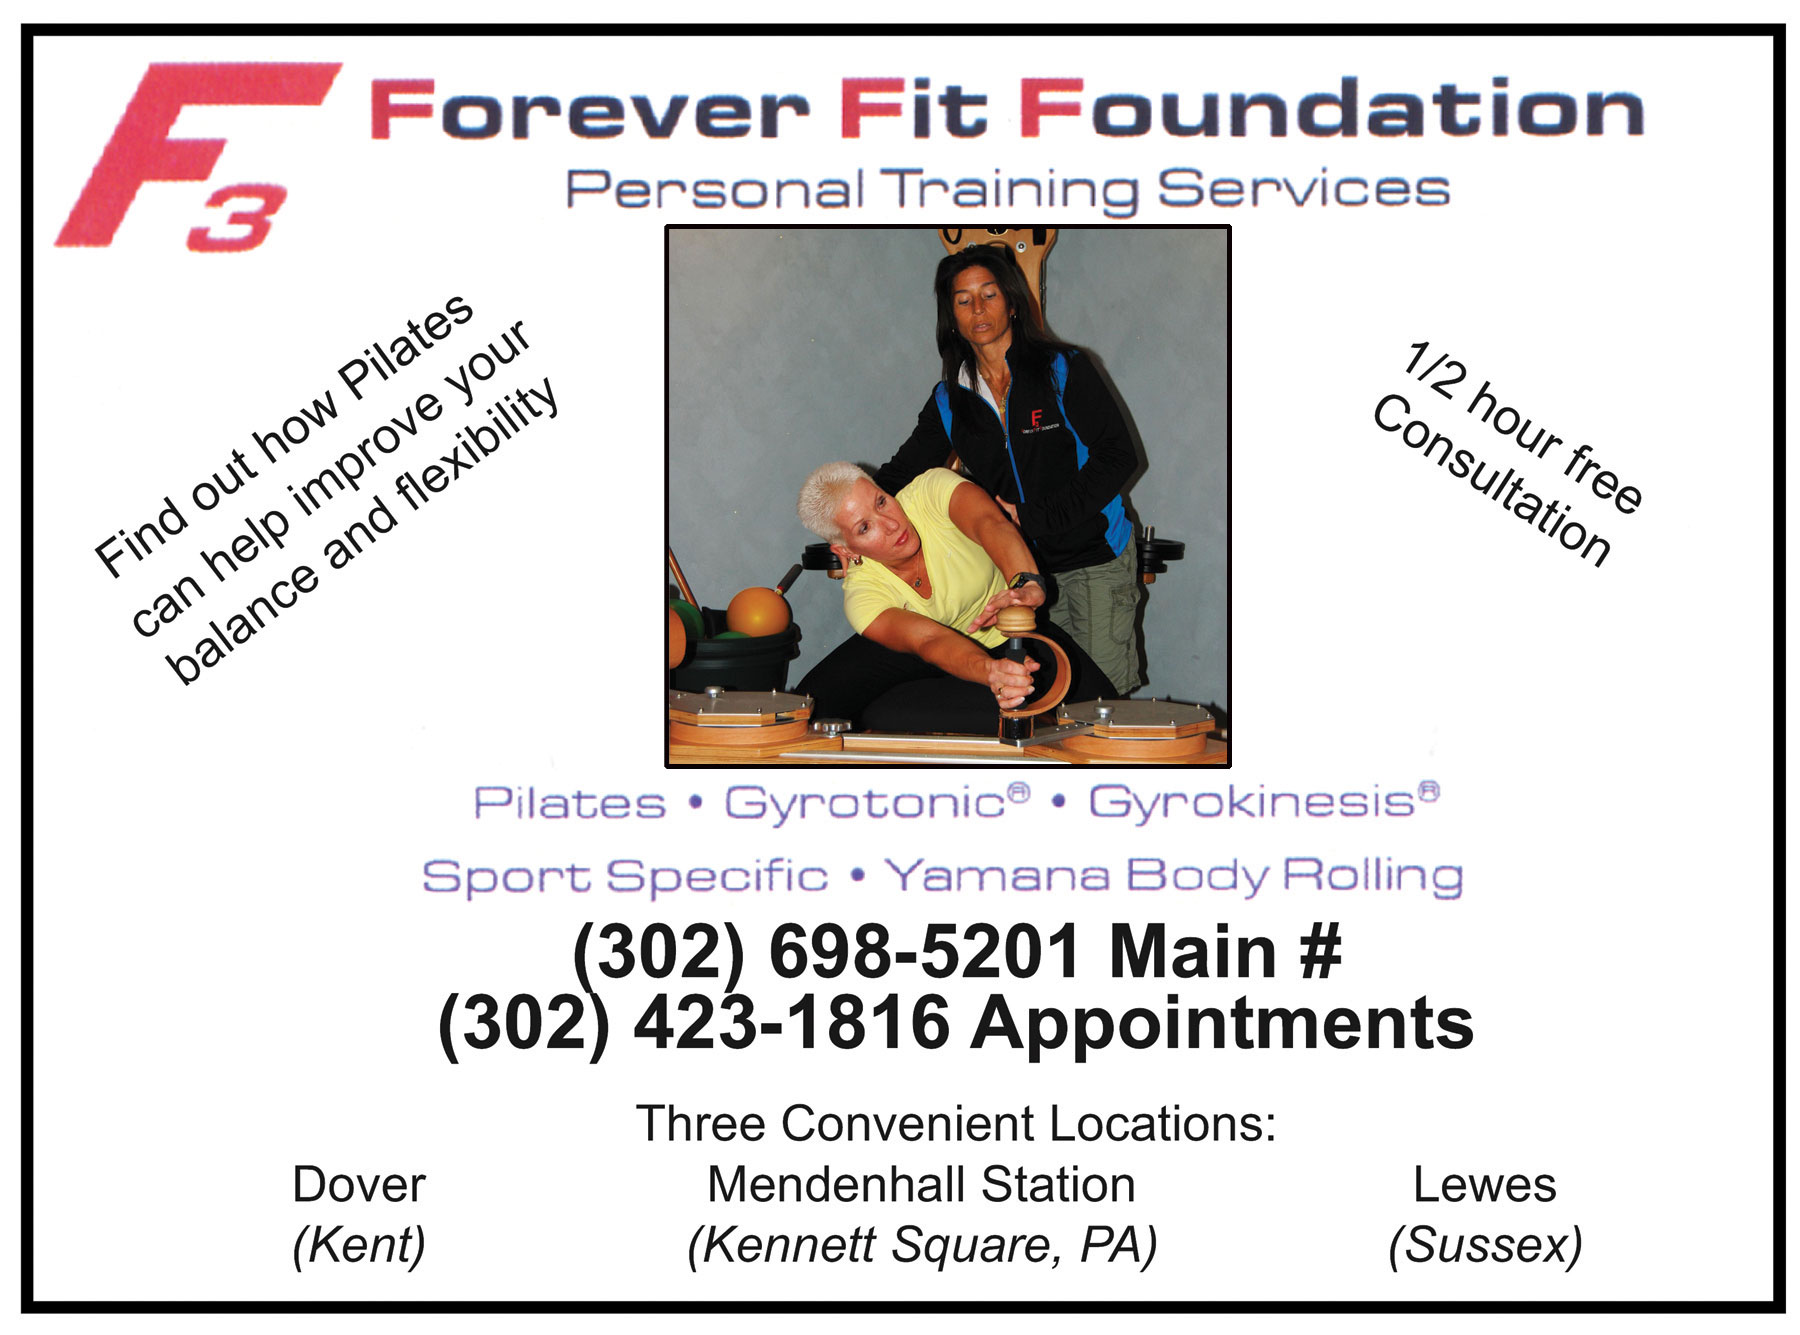 forever_fit_ad_color_jj10